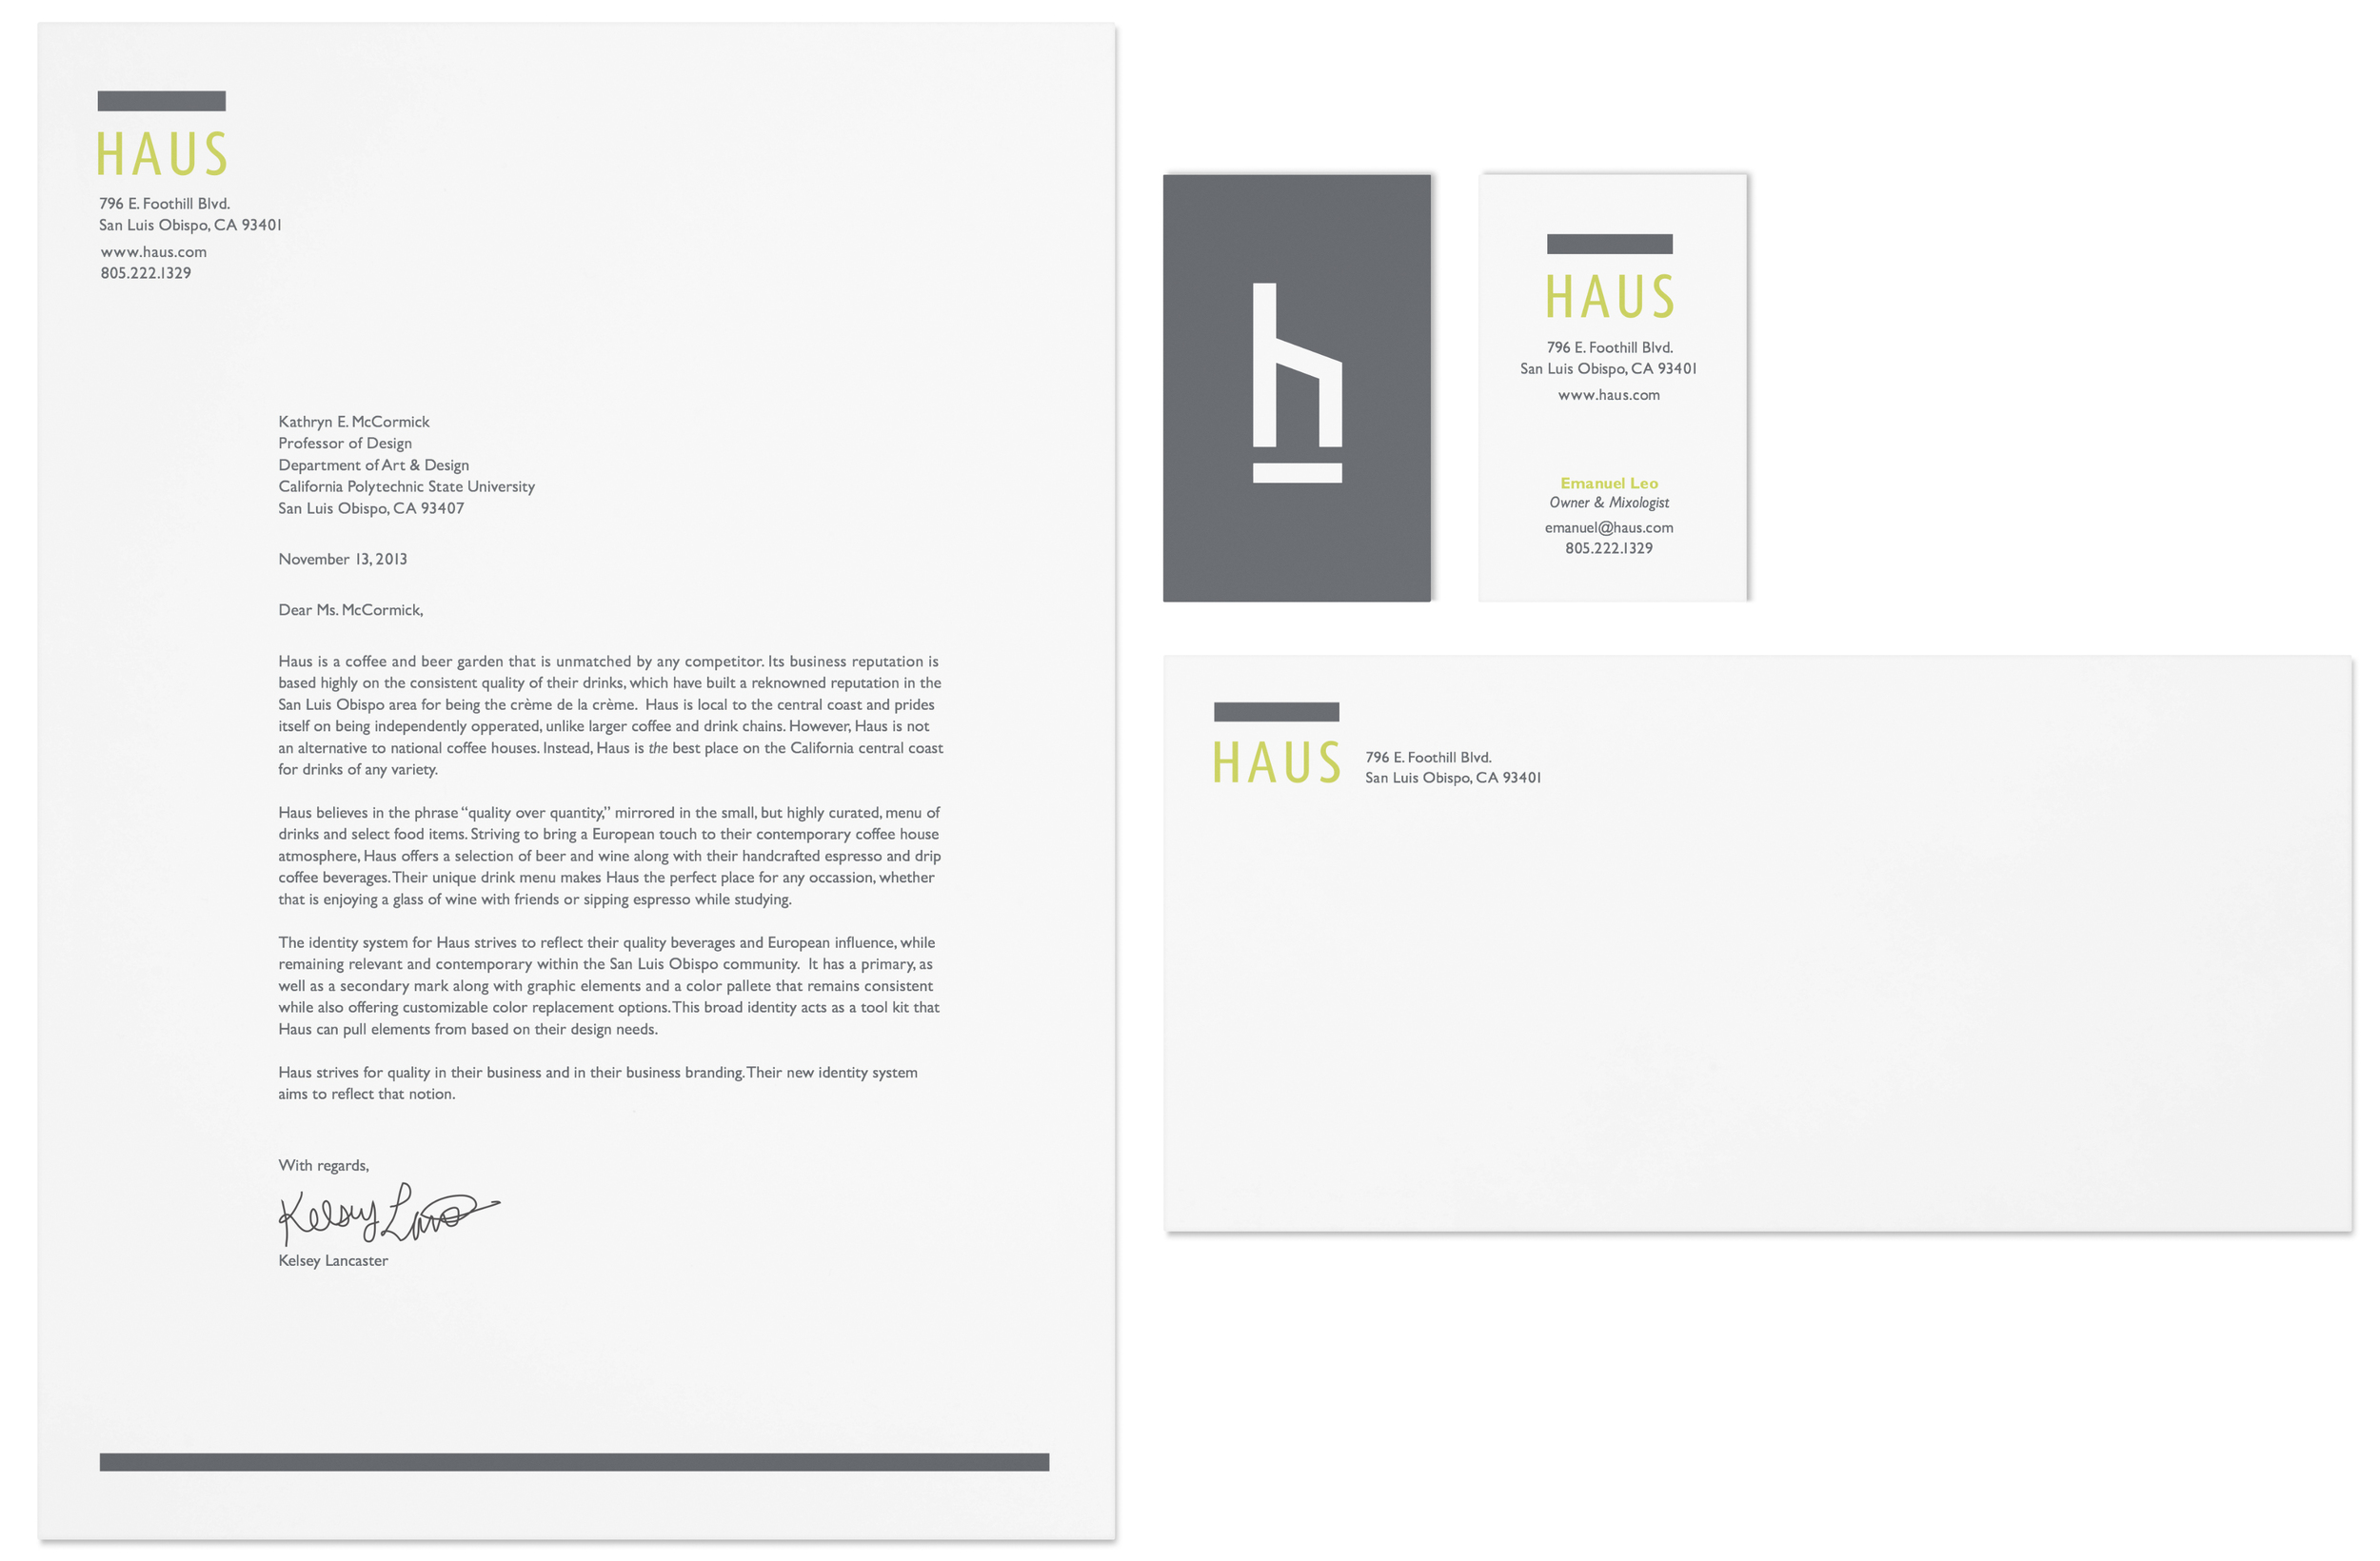 Haus_stationary.jpg